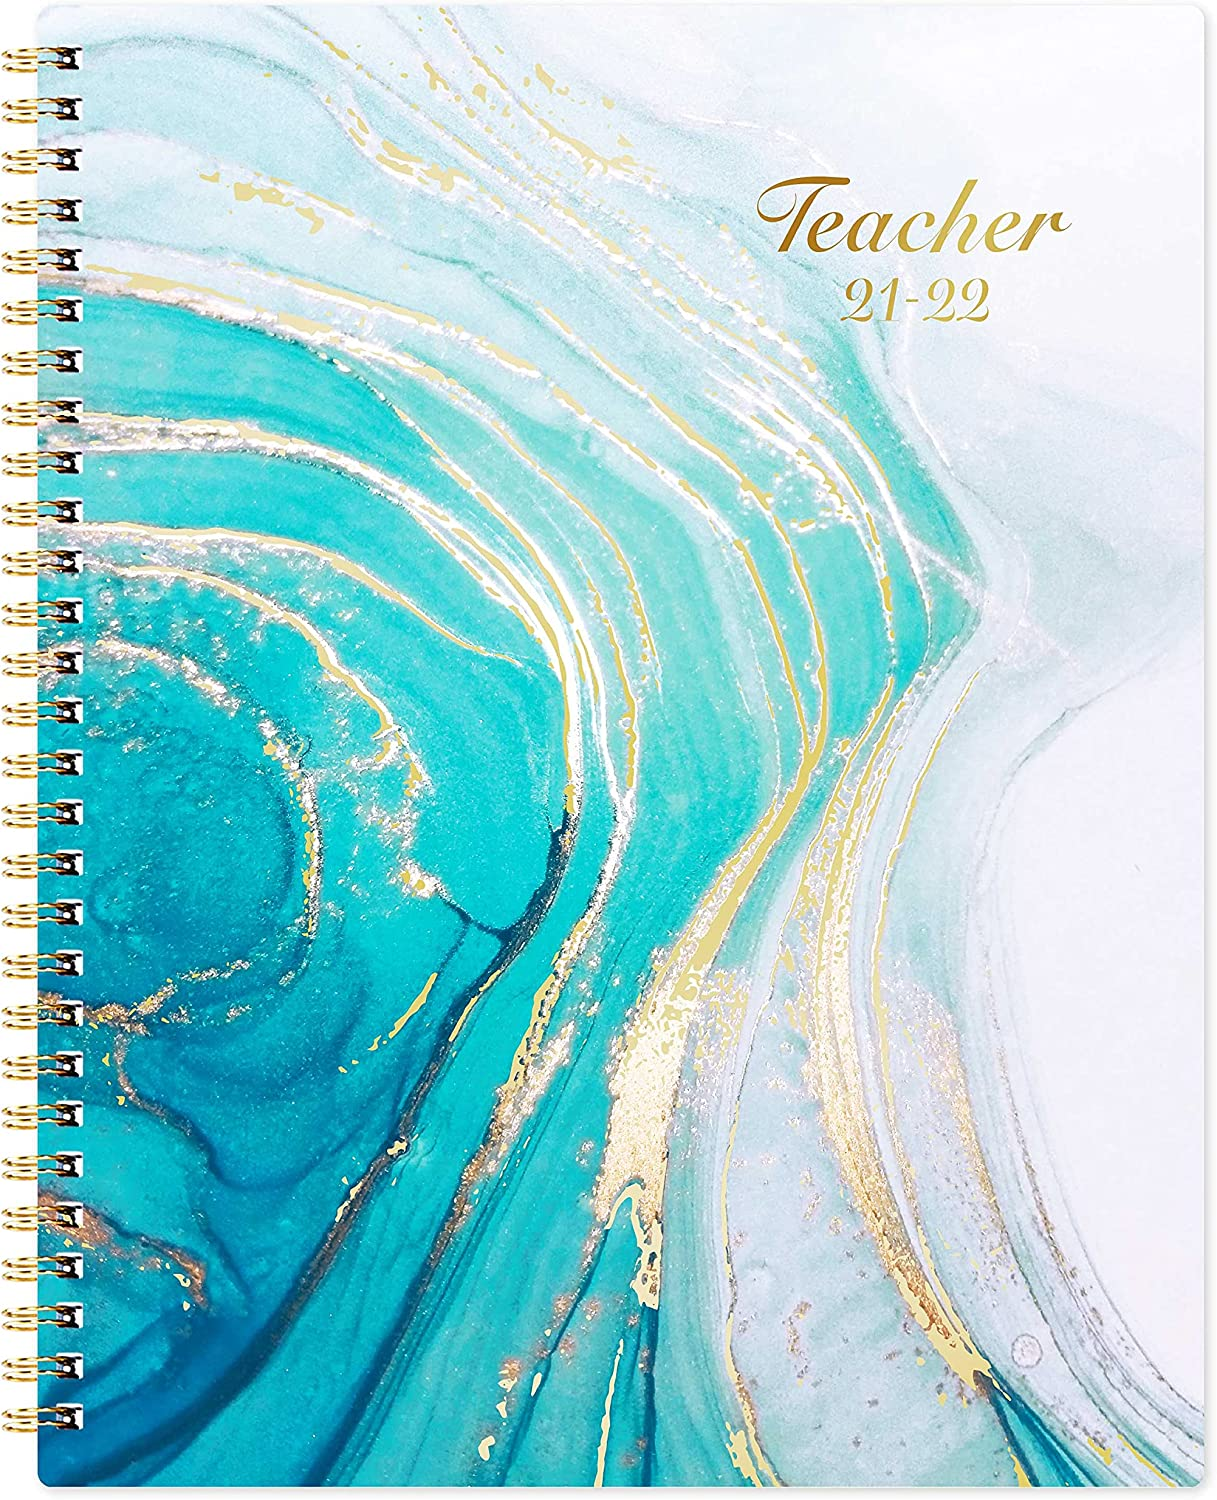 Teacher Planner 2021-2022 - Academic Planner, 8'' x 10'', July 2021 - June 2022, Lesson Plan Book, Weekly & Monthly Lesson Planner,Blue, Bring You a Better Teaching Experience